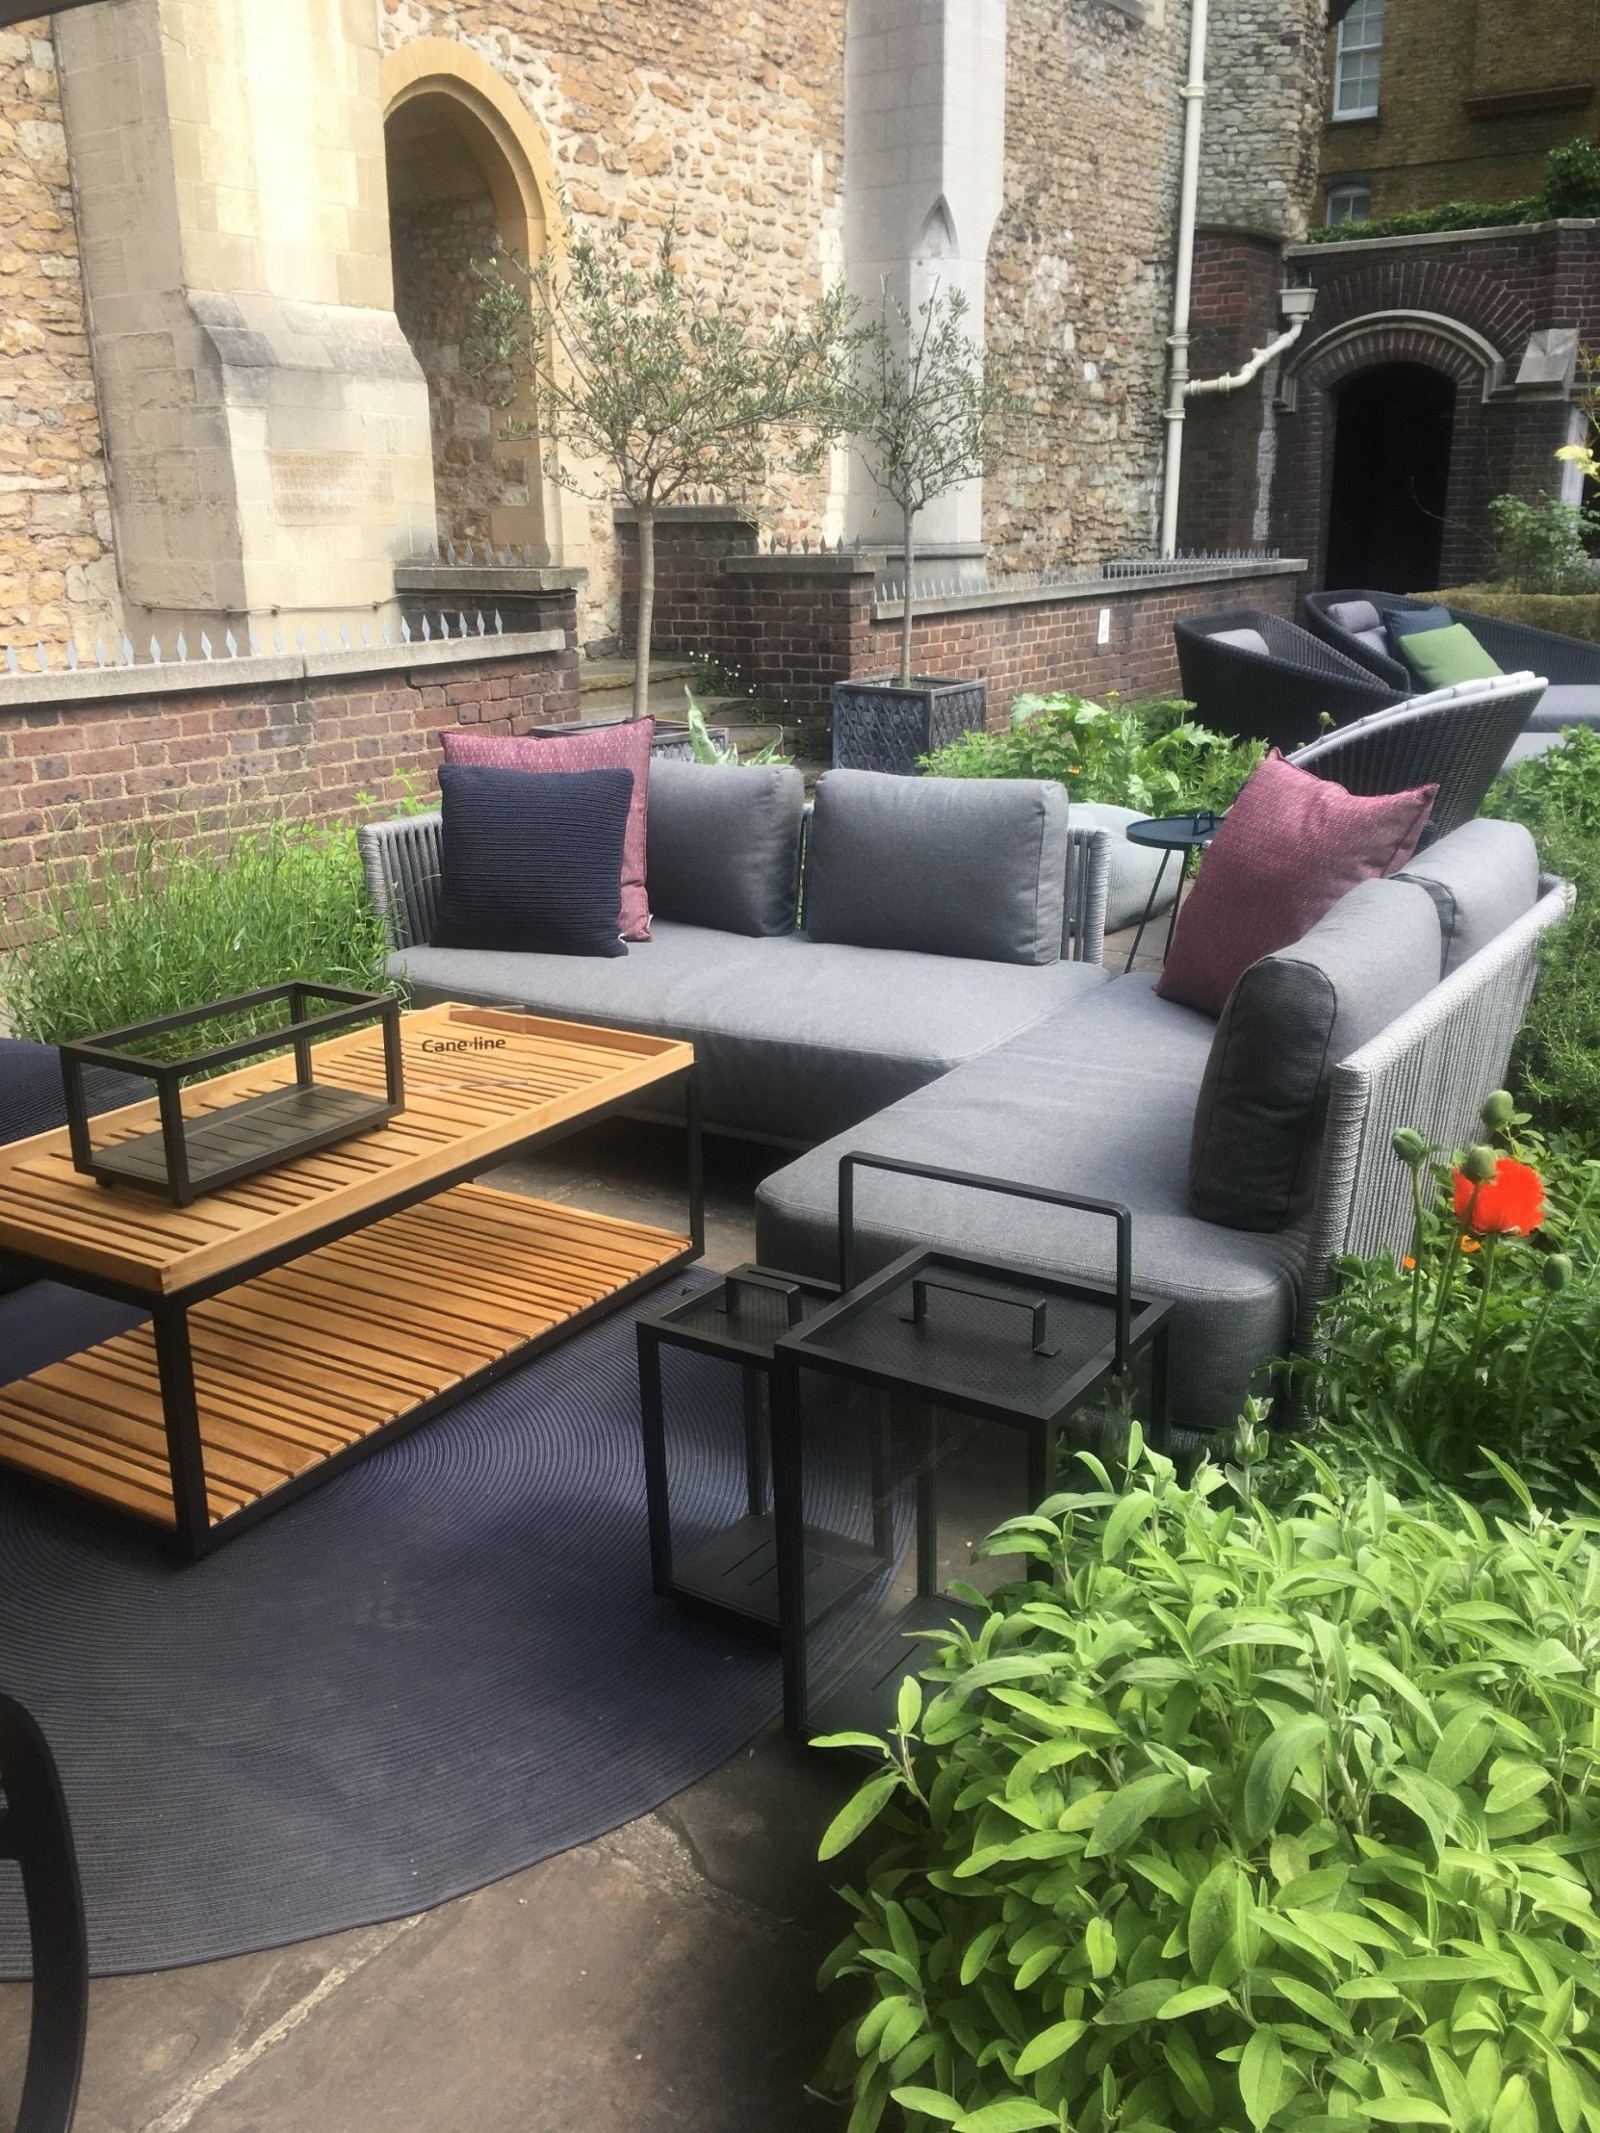 Located within the quaint museum of the order of st john the outdoor furniture range cane line from denmark presented an elegant display of their